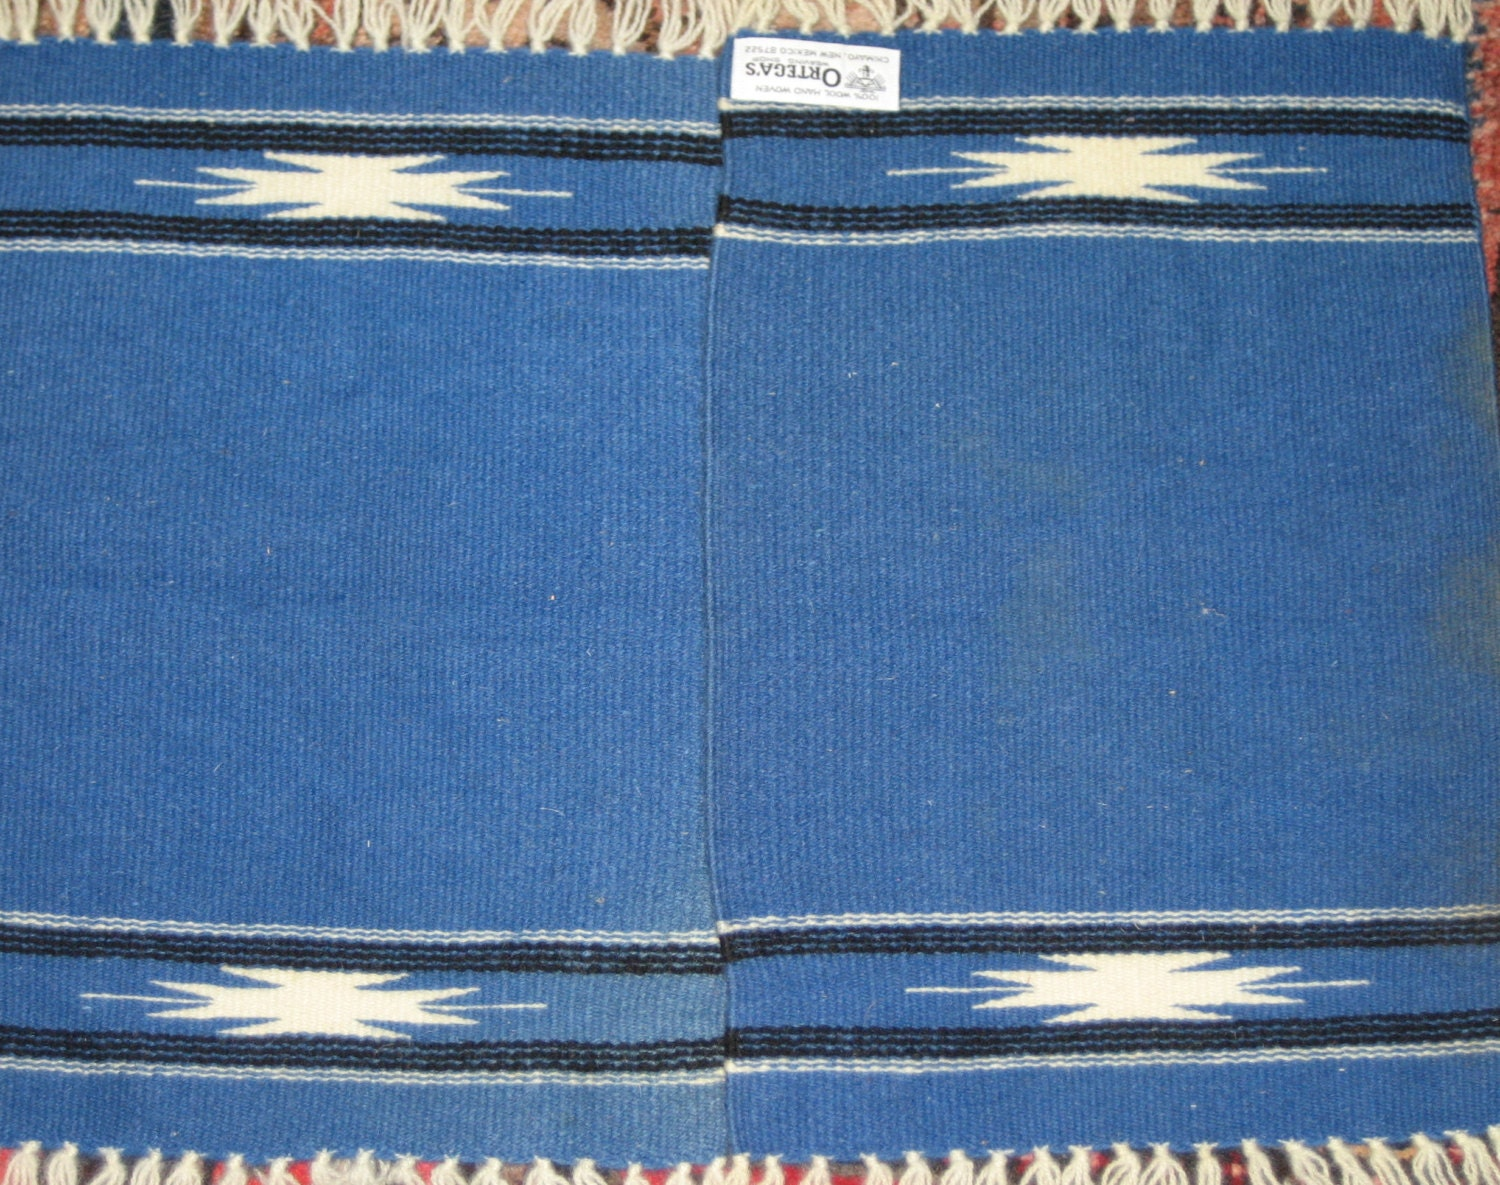 2 Vintage Chimayo Hand Woven Wool Mats Or Small Rugs From